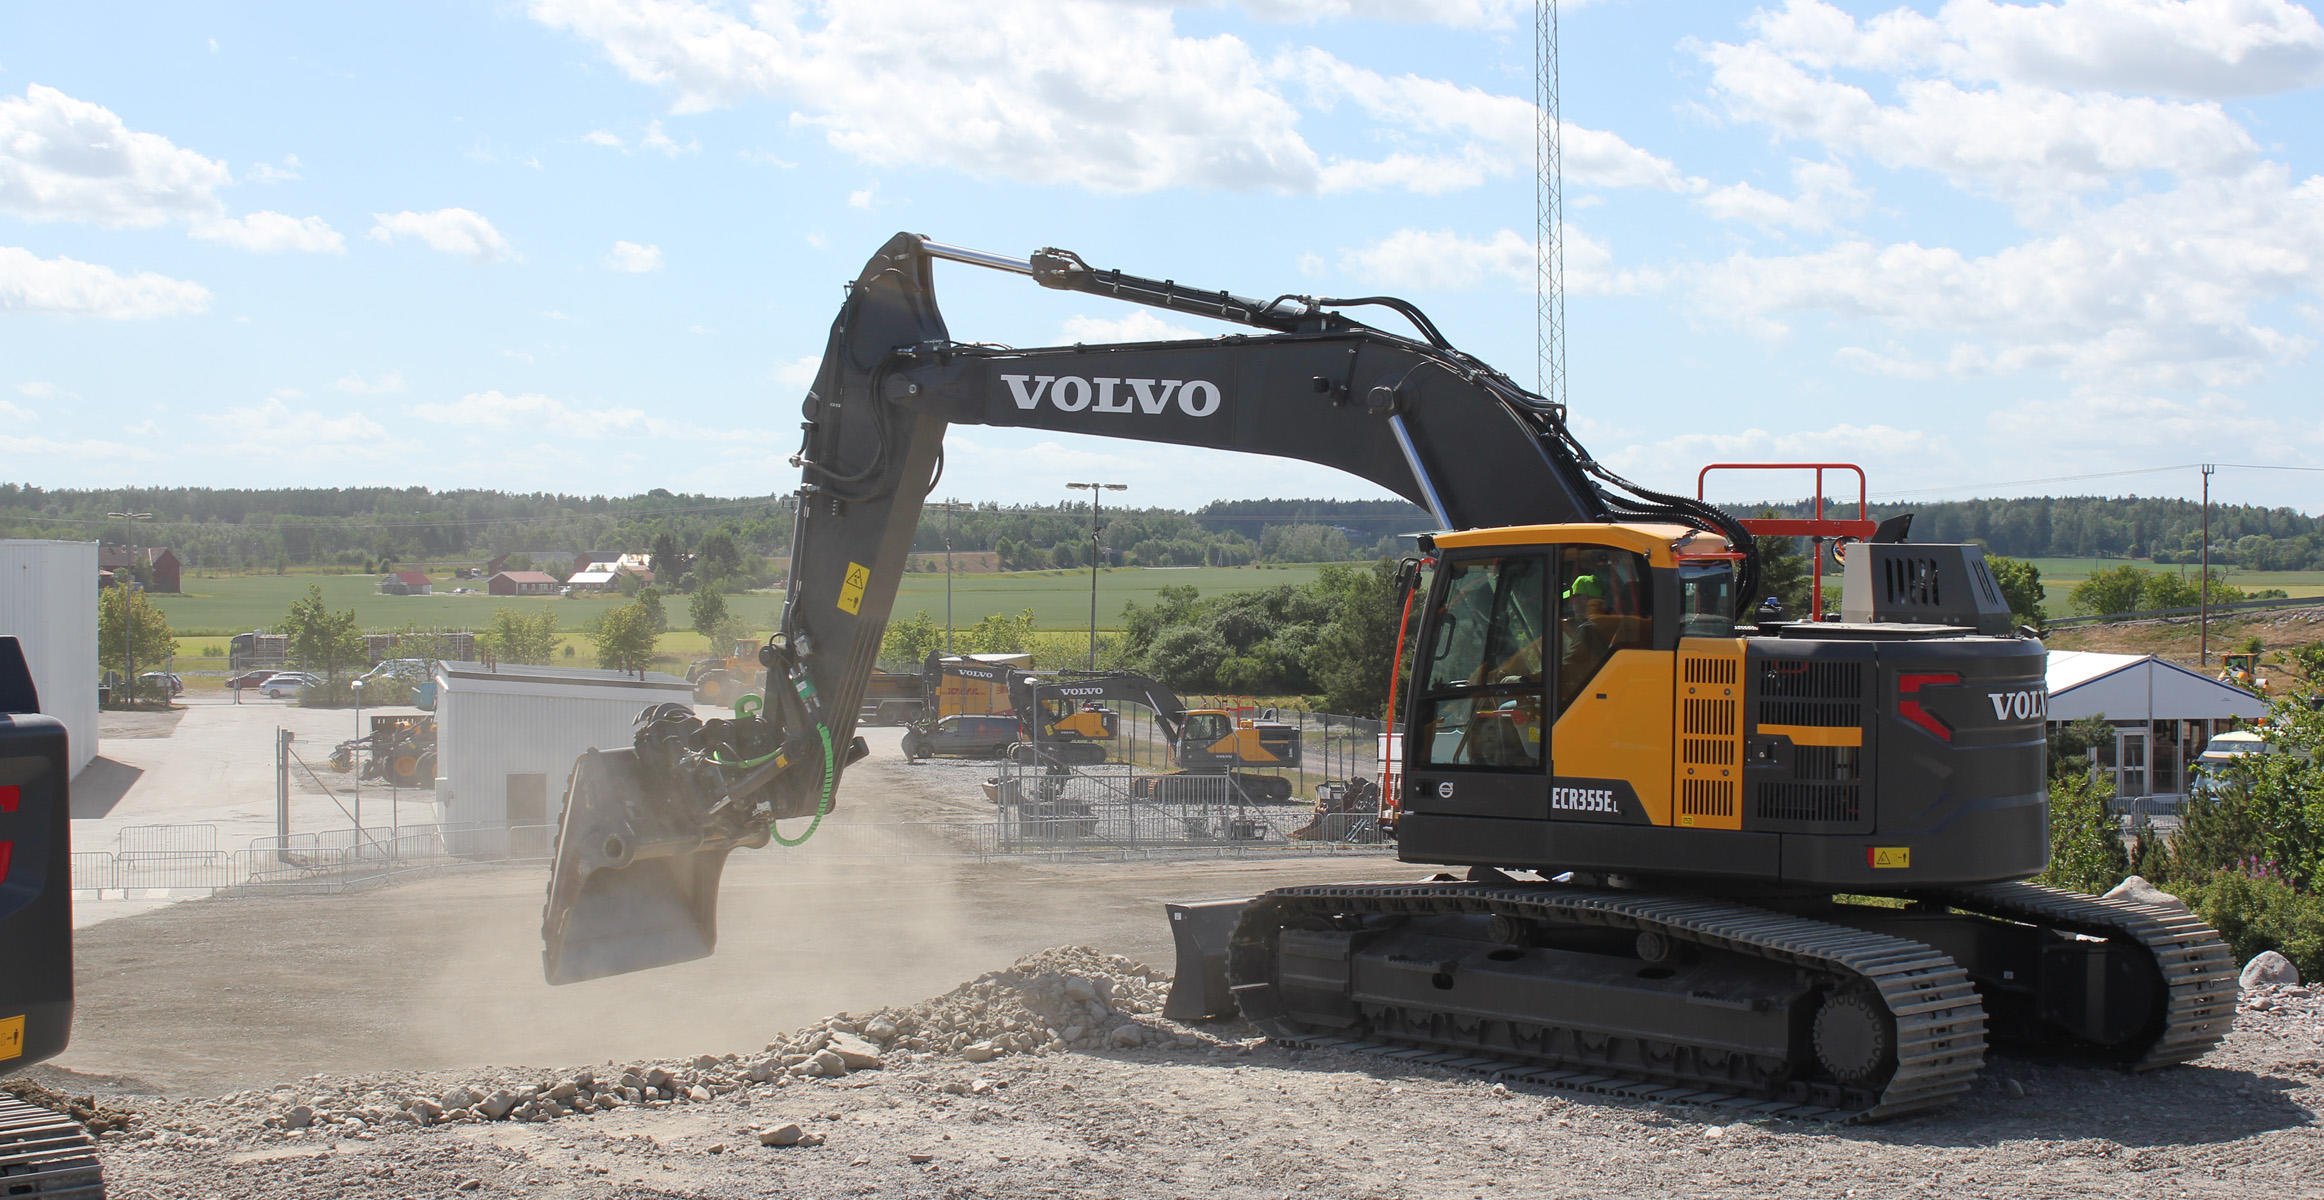 Volvo ECR355E short swing radius crawler excavator at the Volvo Customer Center in Eskilstuna, Sweden